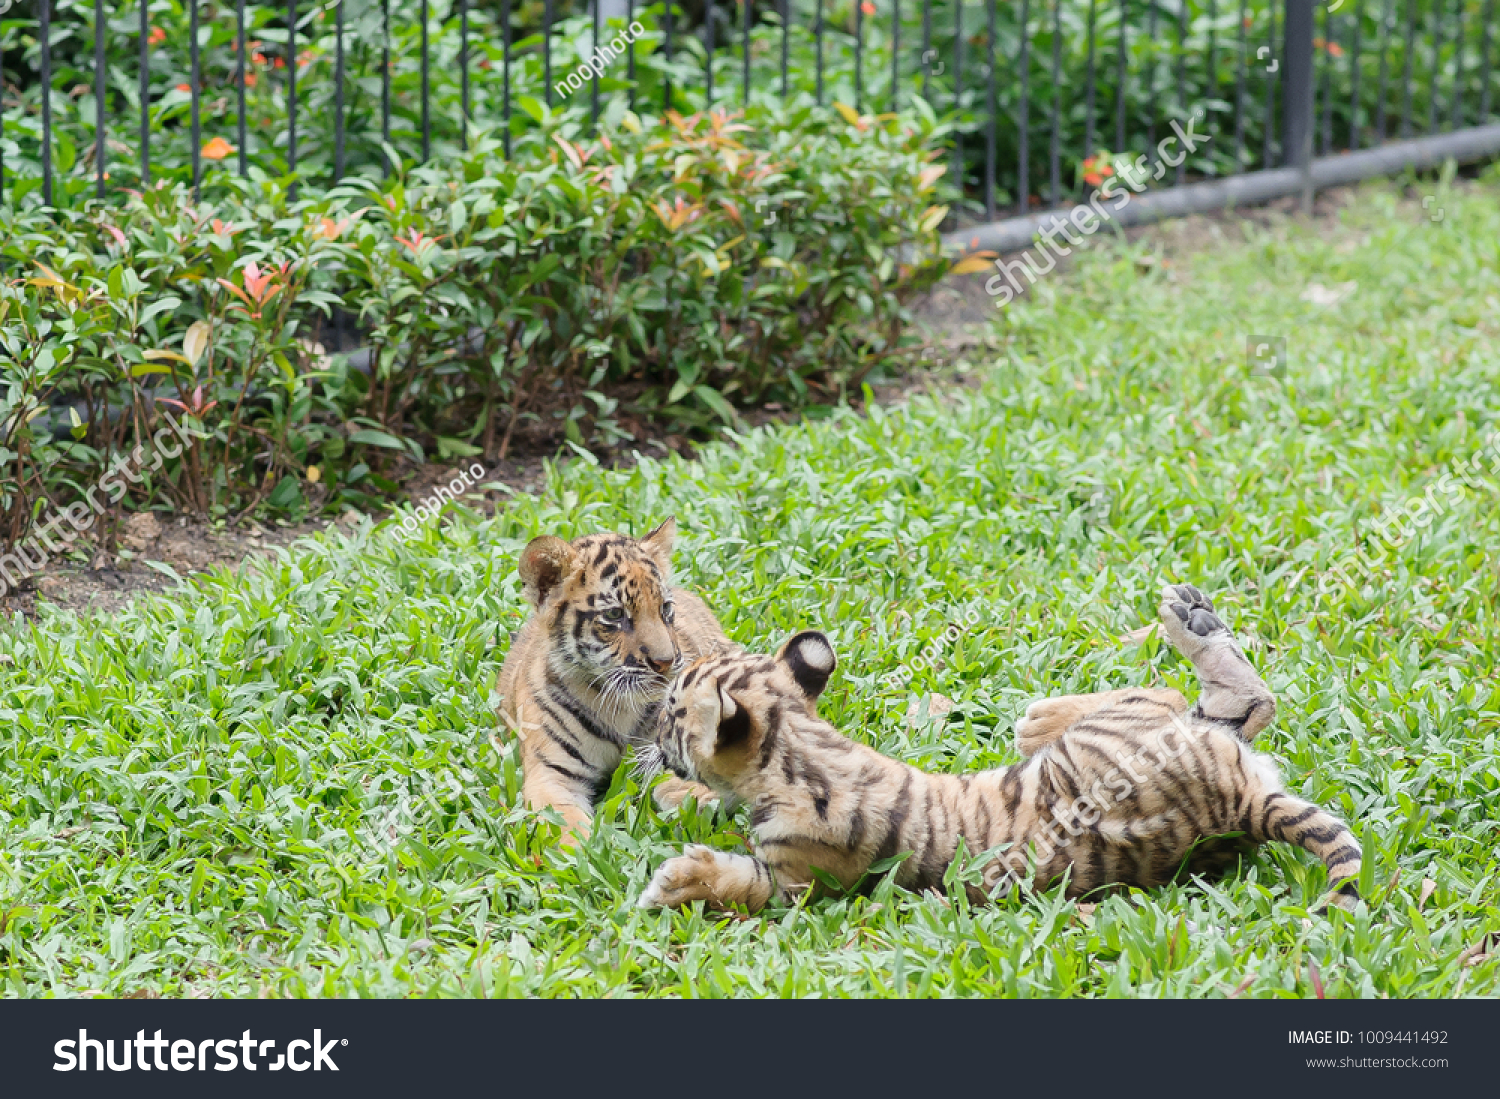 Baby Tiger Running Very Cute Stock Photo Edit Now 1009441492